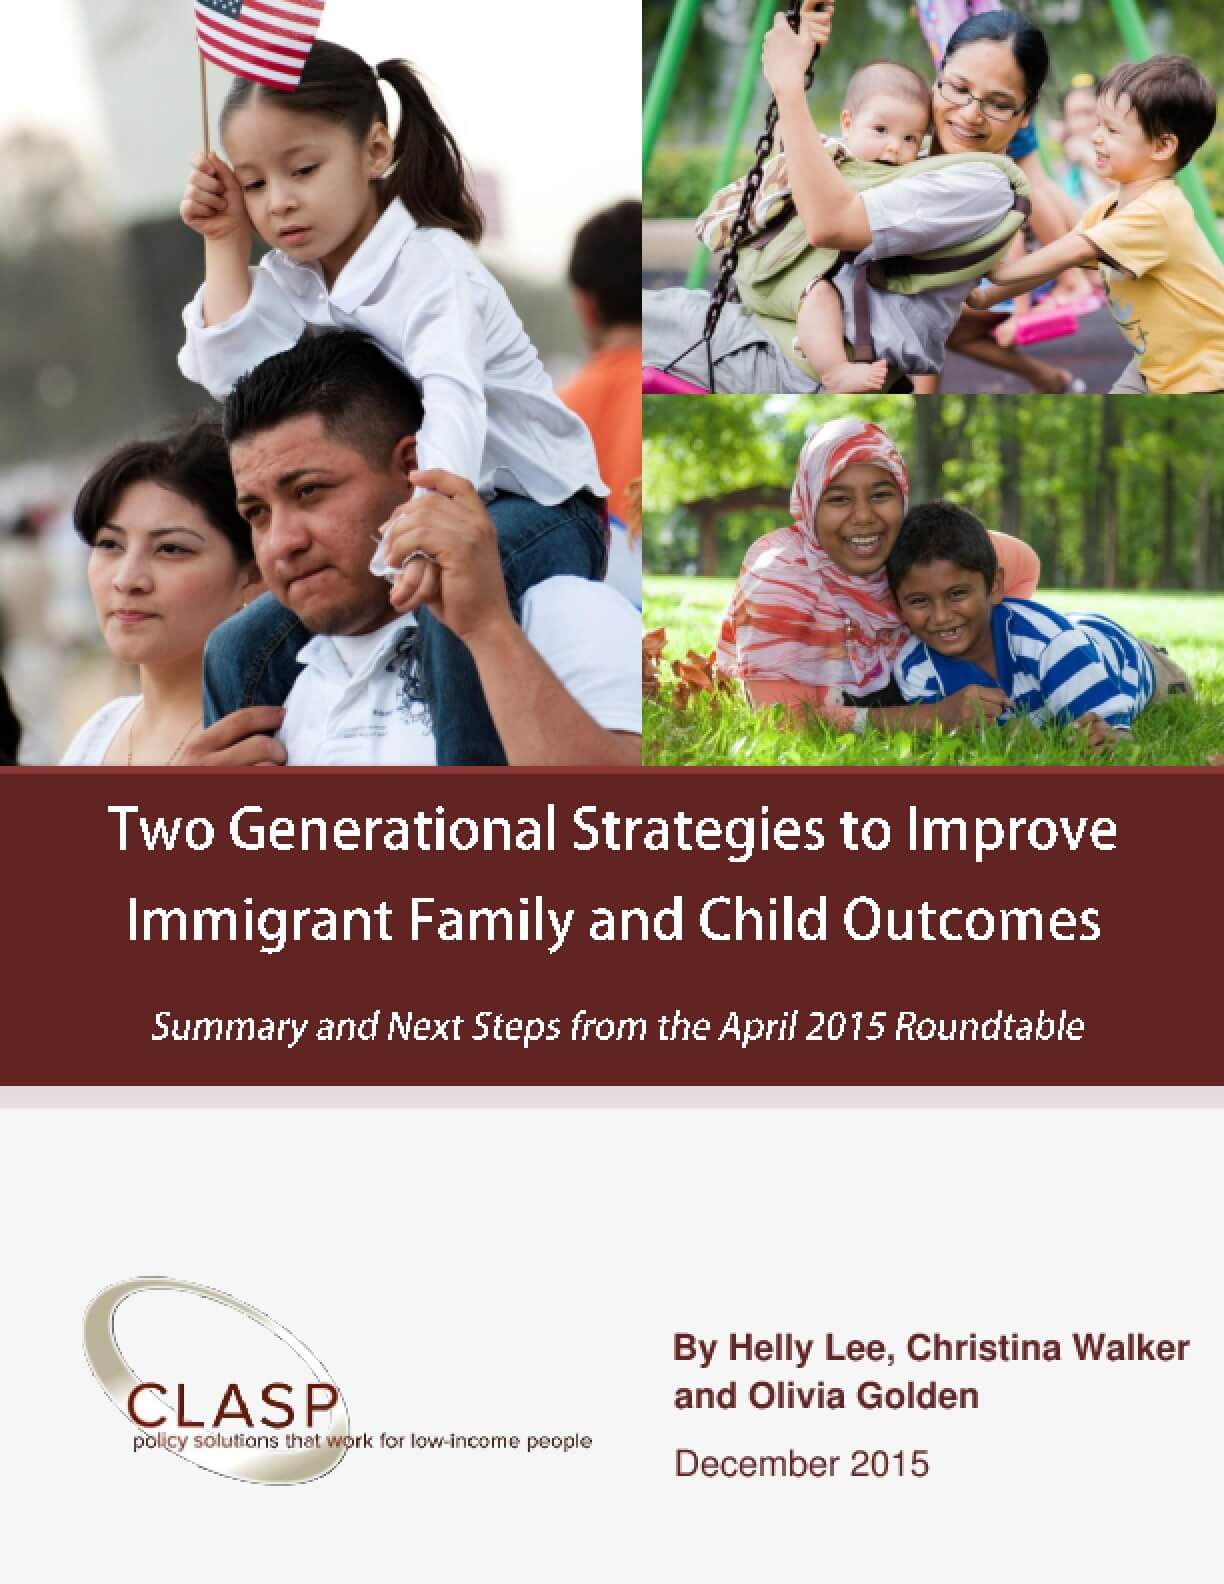 Two Generational Strategies to Improve Immigrant Family and Child Outcomes